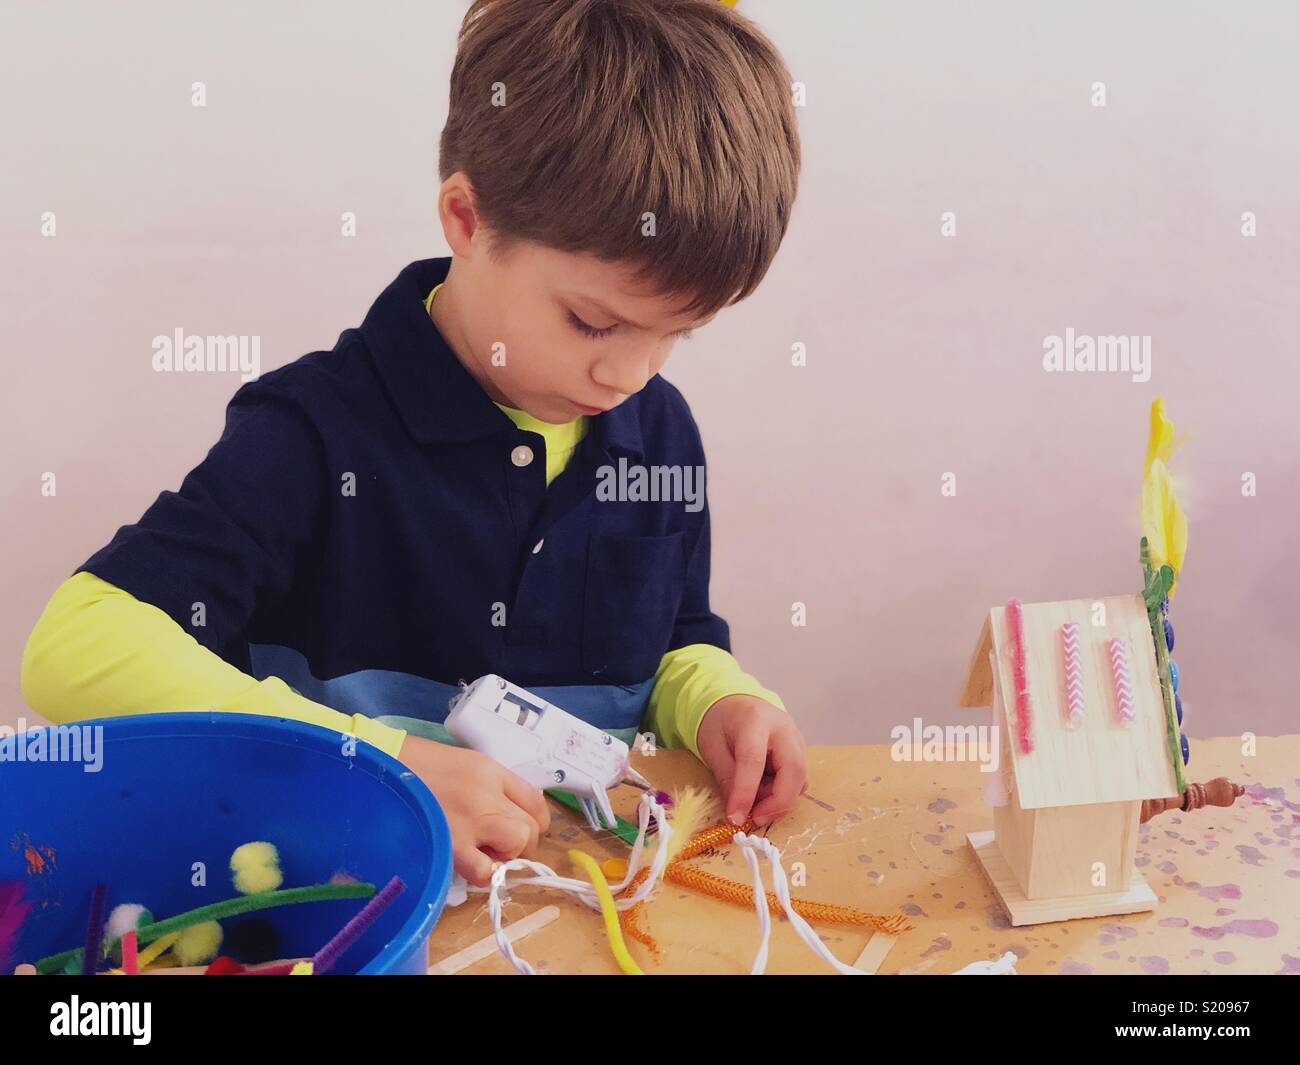 Boy crafting and using glue gun Stock Photo